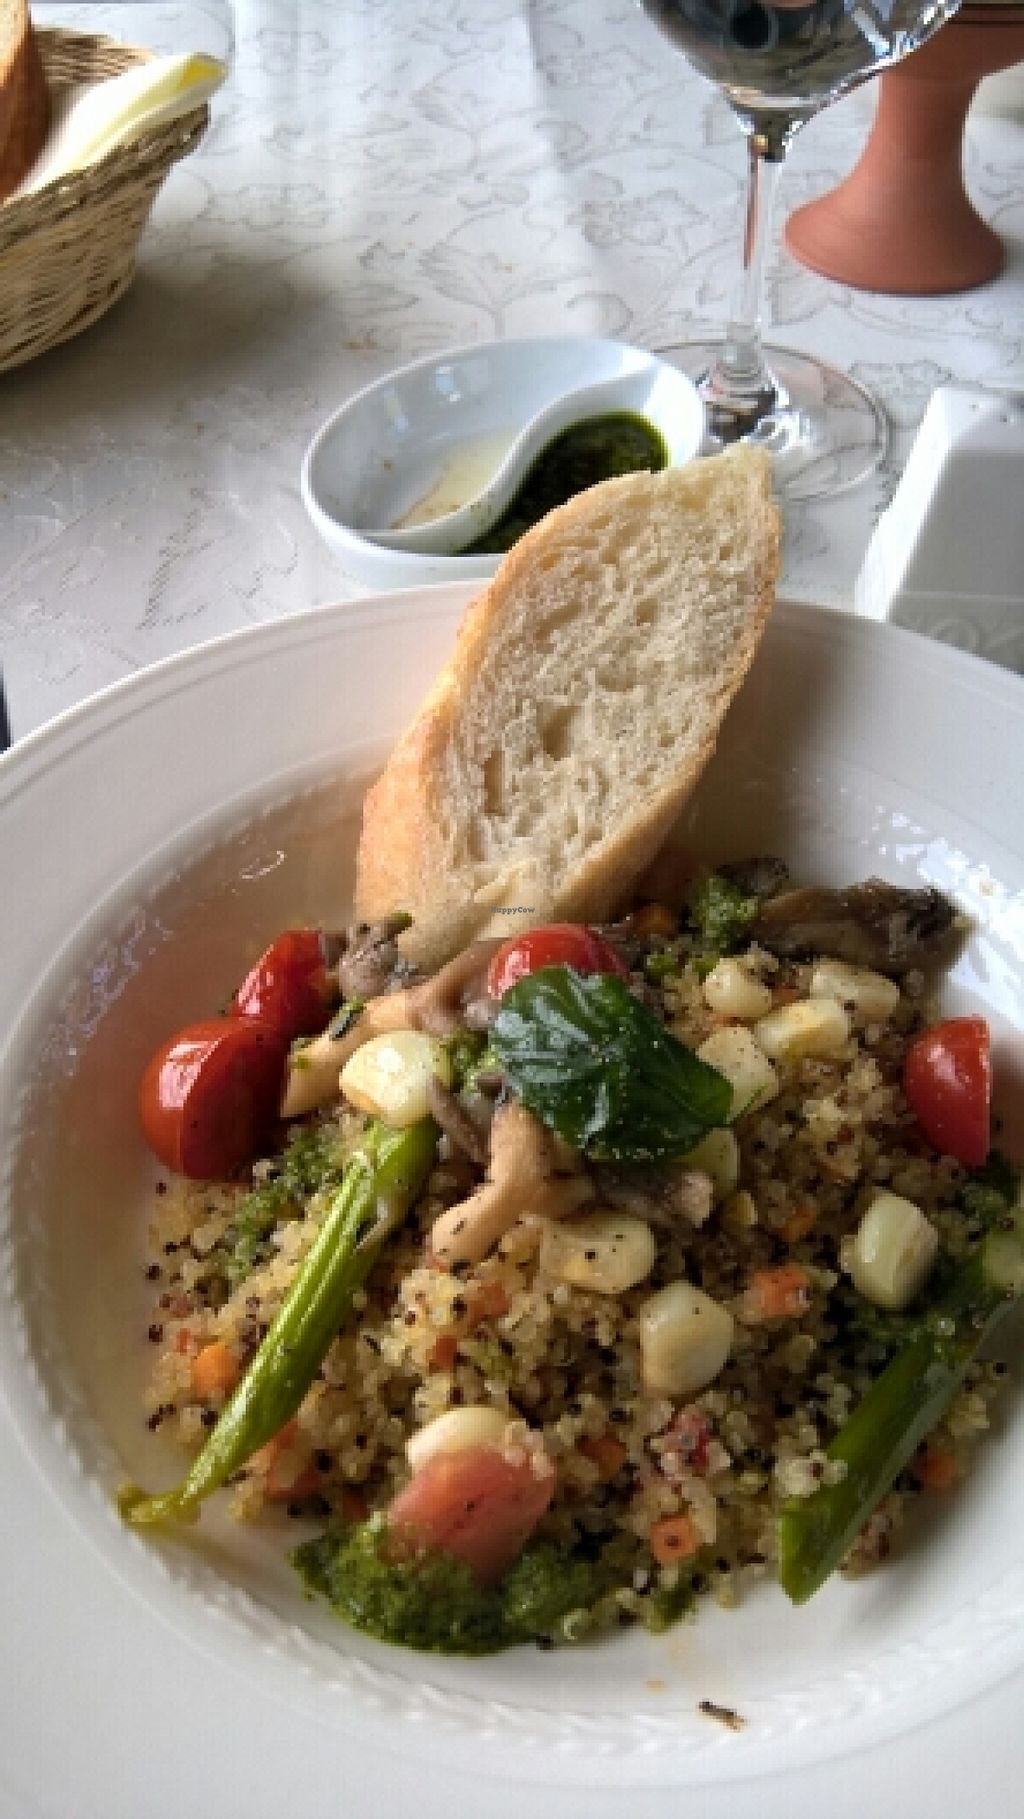 """Photo of Peru Rail  by <a href=""""/members/profile/VinceVandemolegraaf"""">VinceVandemolegraaf</a> <br/>Peruvian Quinoa vegan salad <br/> July 9, 2016  - <a href='/contact/abuse/image/71826/158586'>Report</a>"""